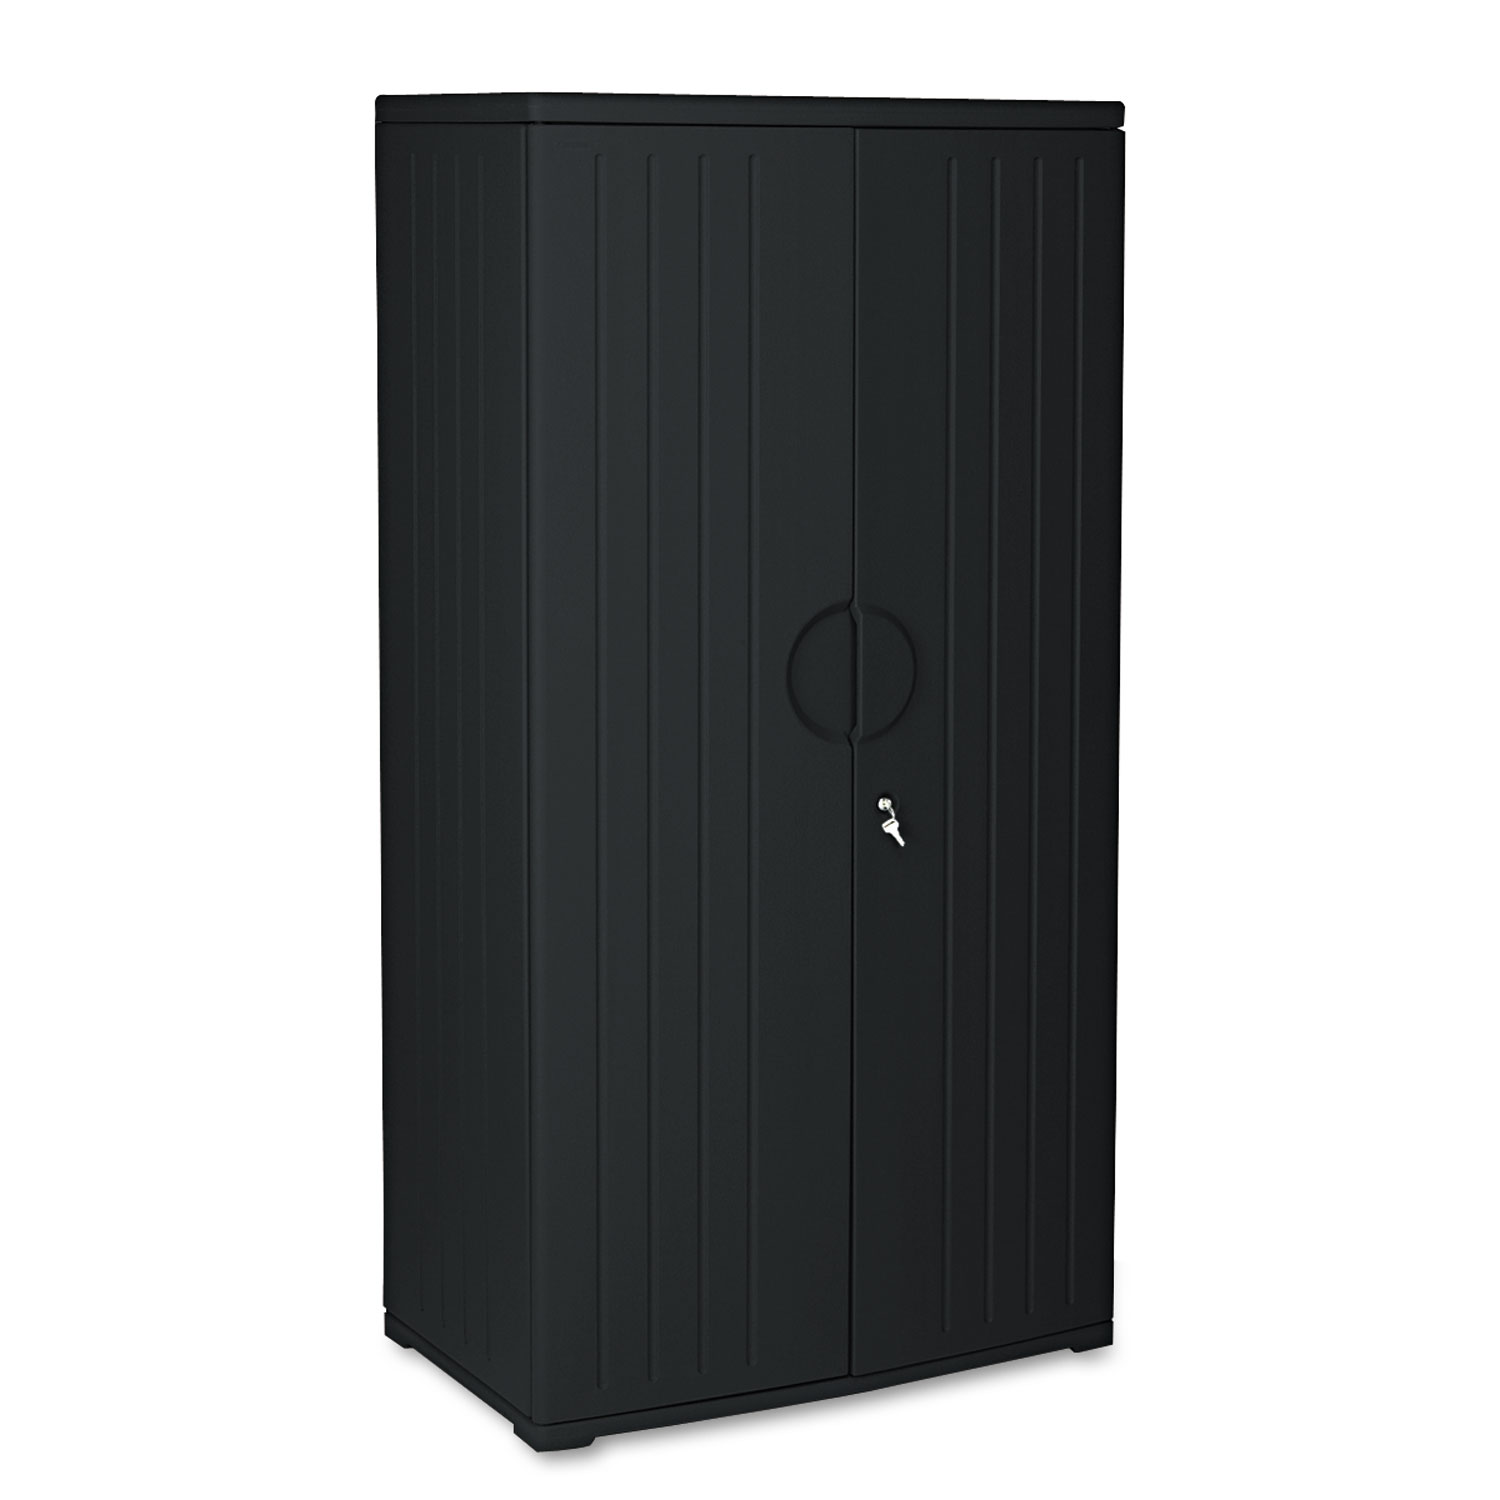 Officeworks Stools Officeworks Resin Storage Cabinet 36w X 22d X 72h Black